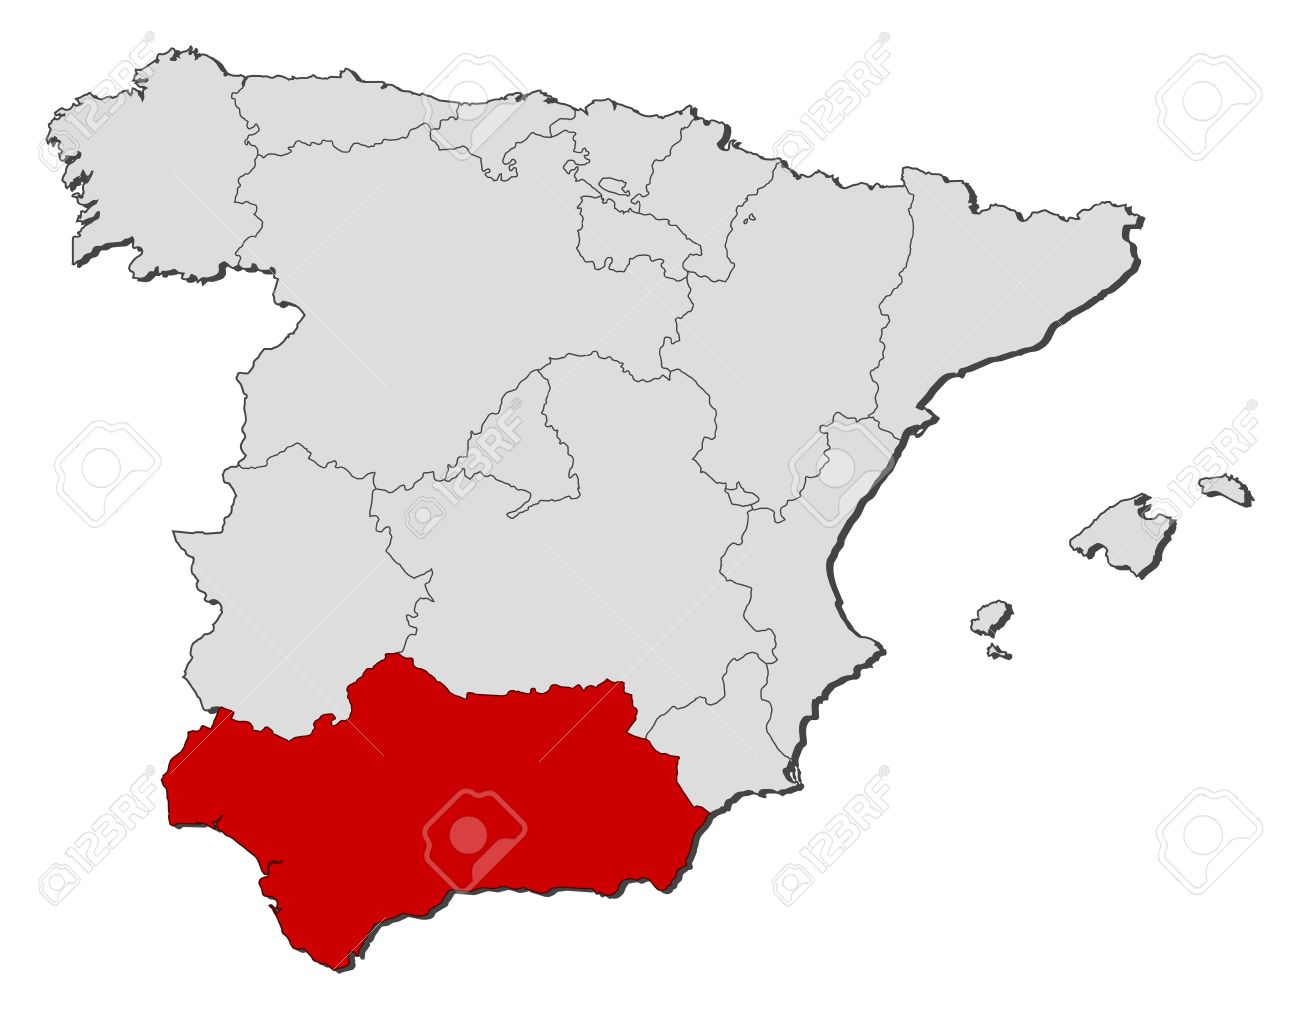 Political Map Of Spain With The Several Regions Where Andalusia - Map of andalusia